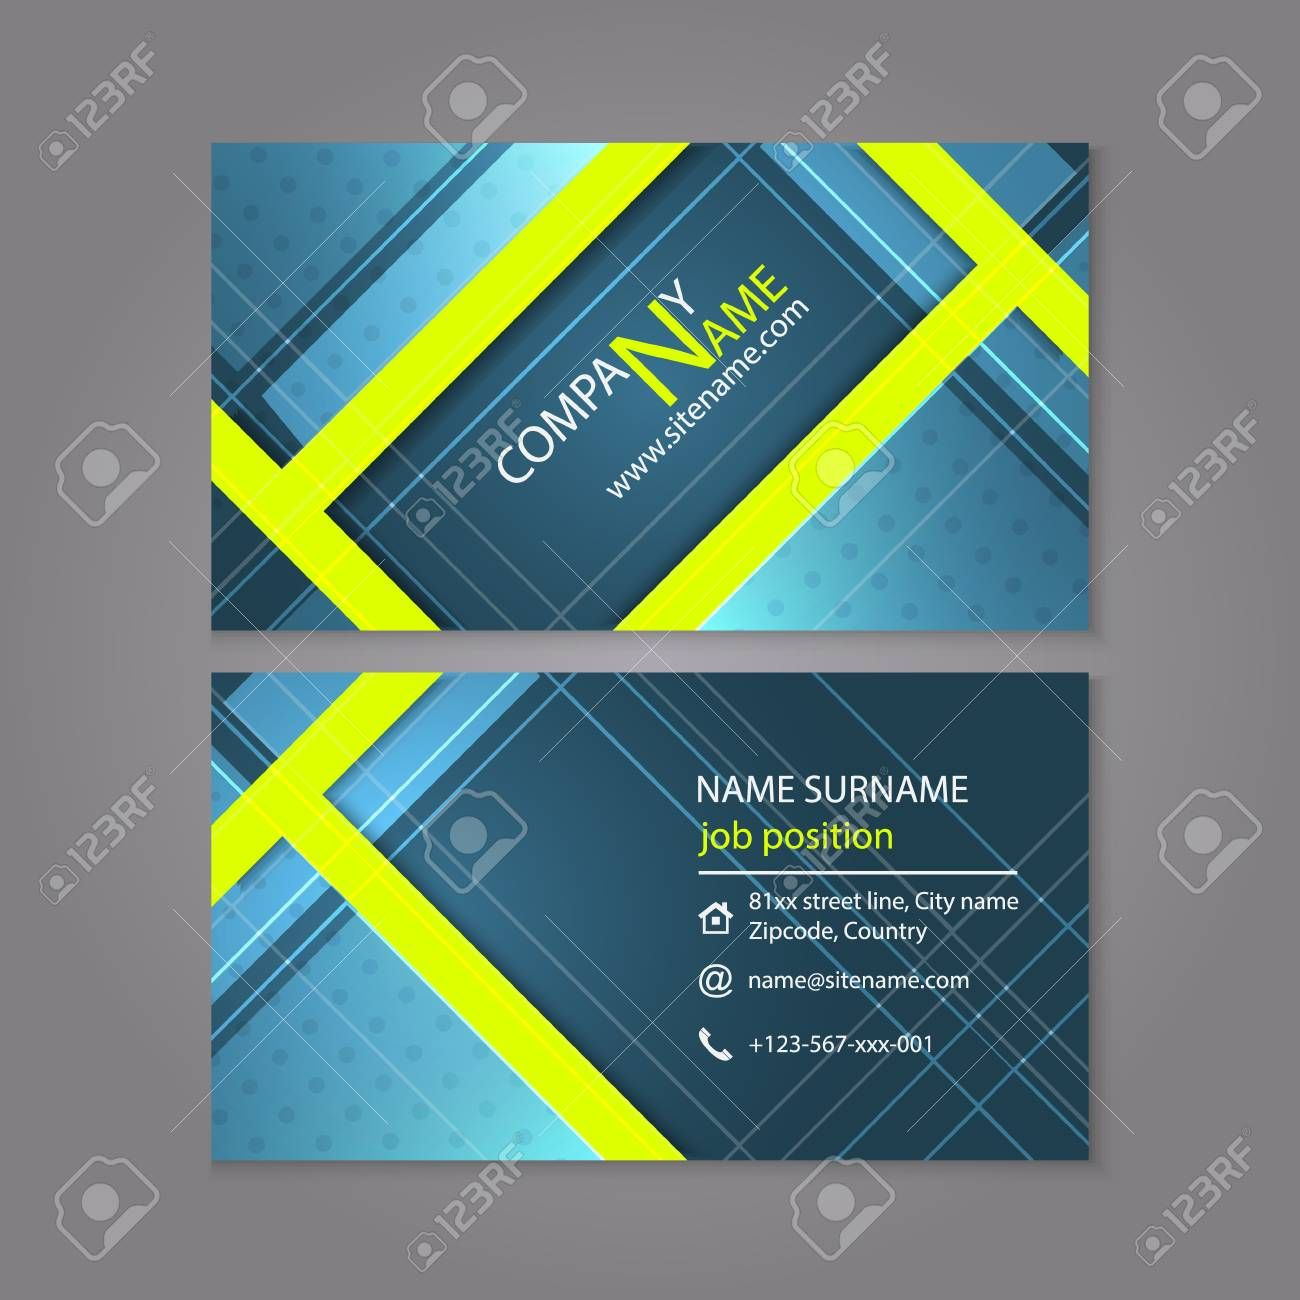 Professional Business Card Template Design Or Visiting Card Set For Profession Professional Business Cards Templates Professional Business Cards Visiting Cards